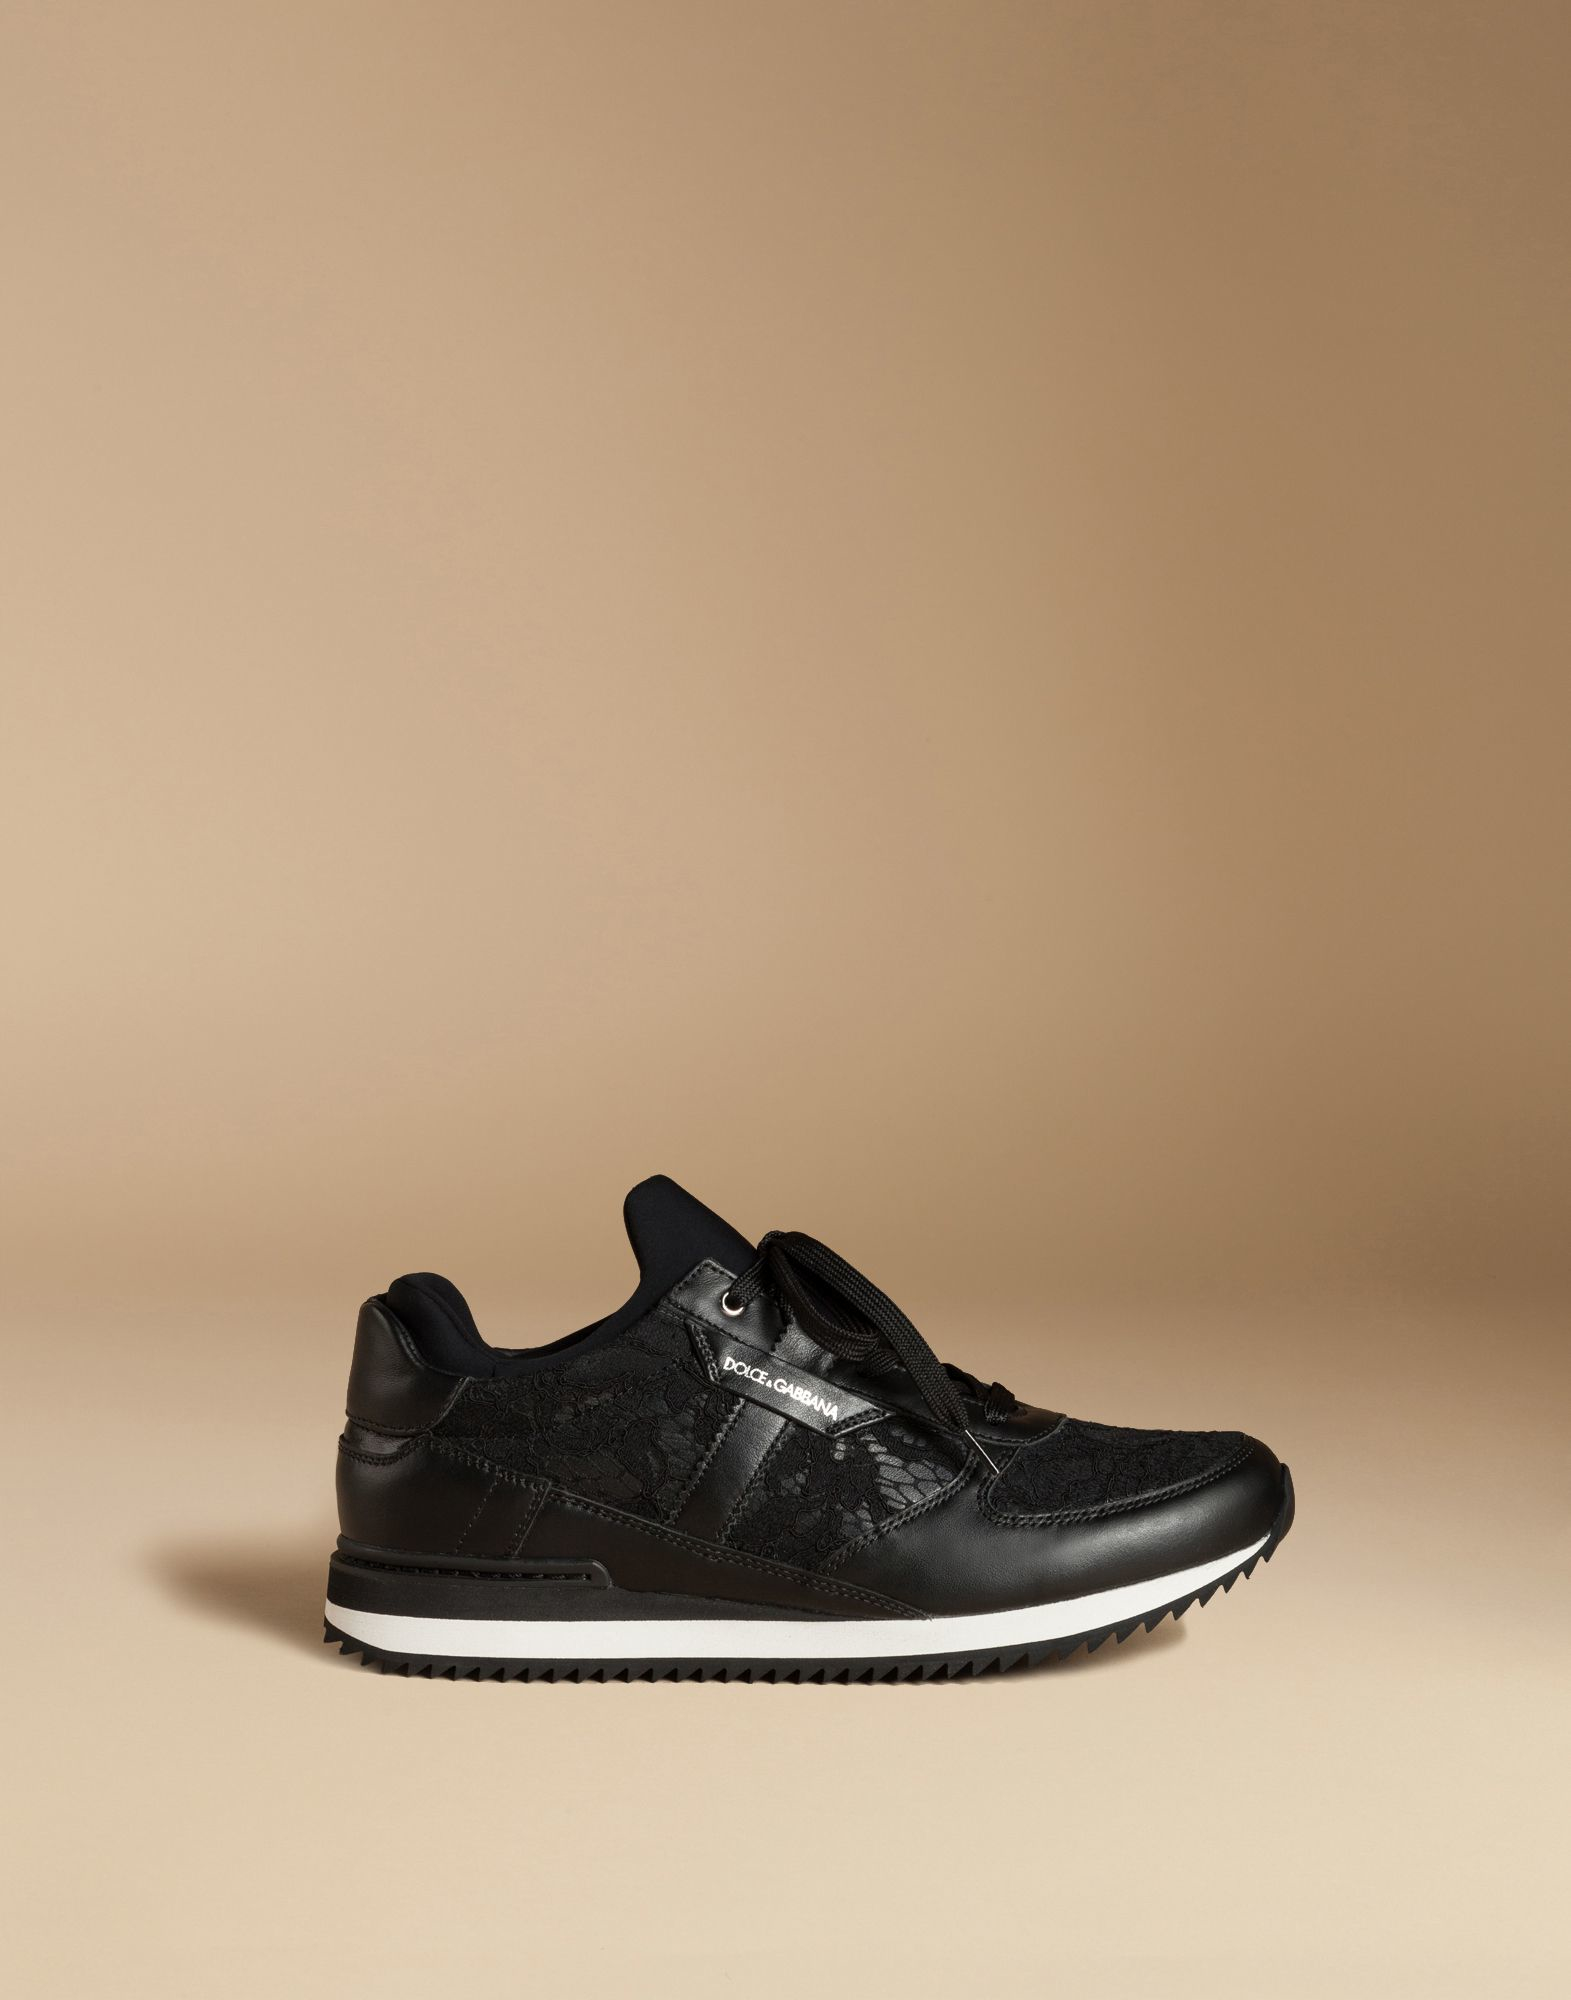 Lyst - Dolce   Gabbana Lace And Calfskin Sneakers in Black b43be9976d